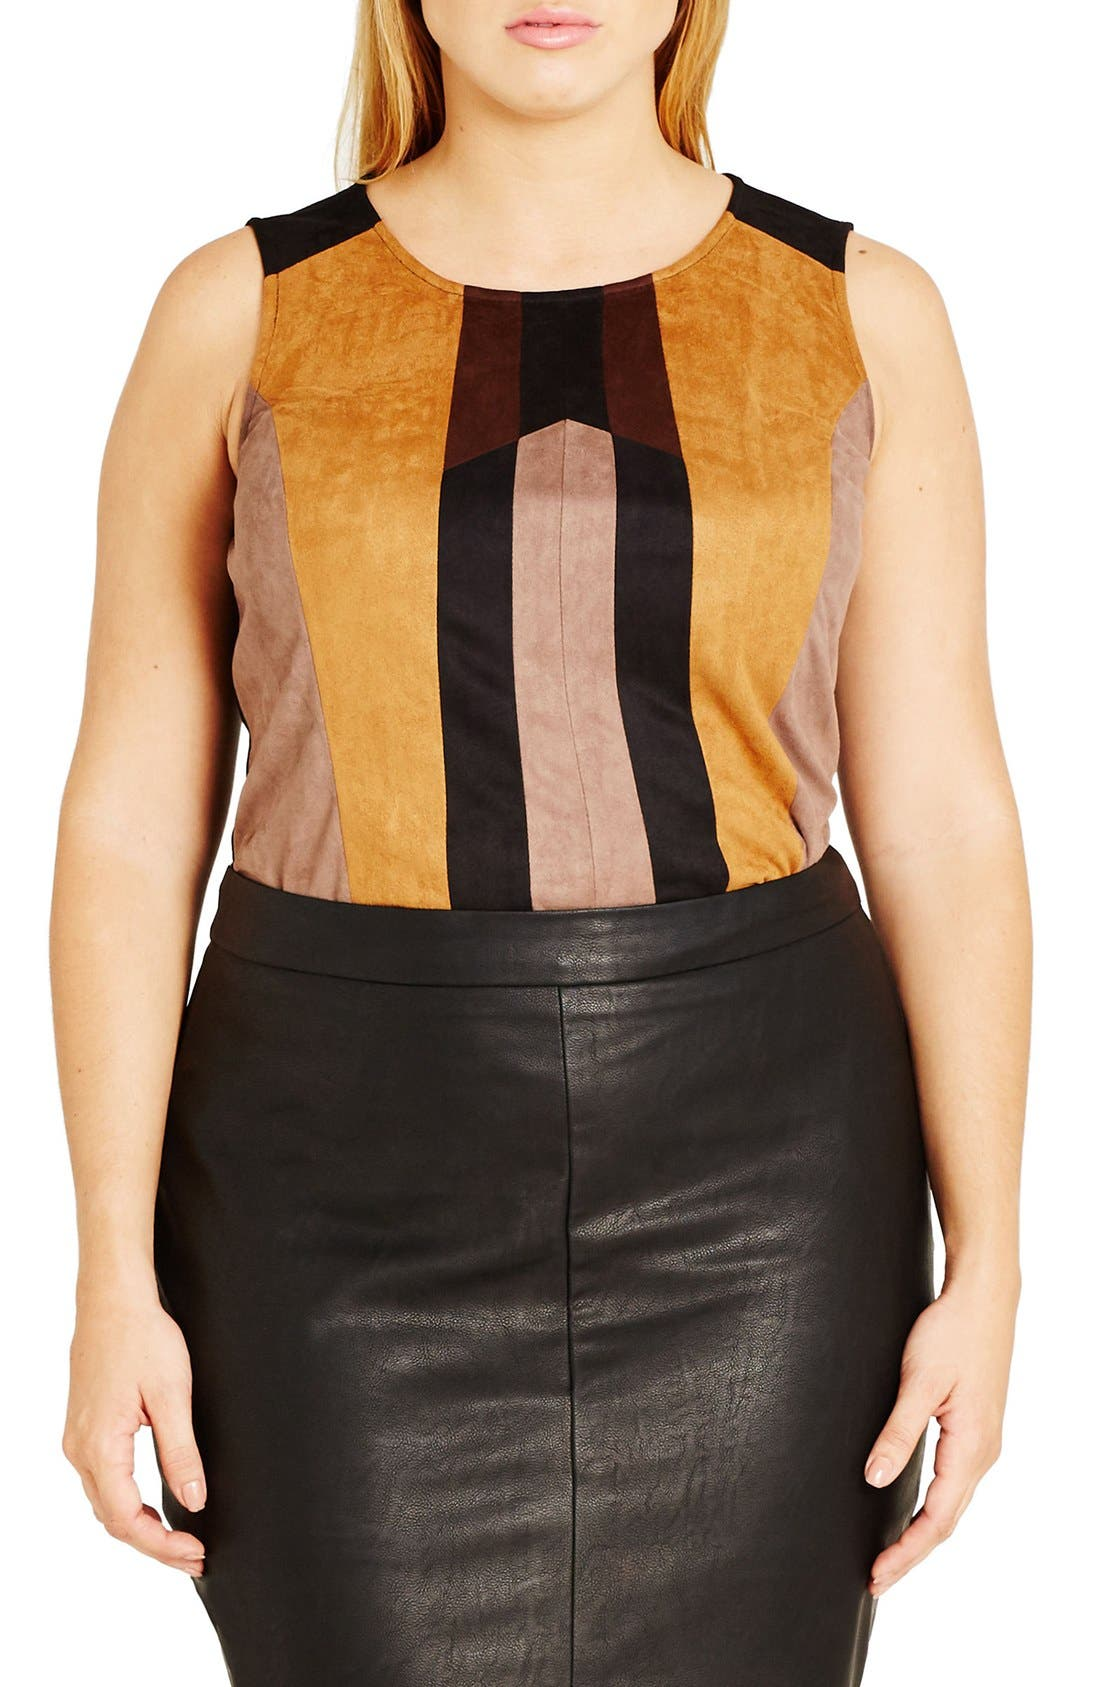 Main Image - City Chic Patchwork Faux Suede Front Crop Top (Plus Size)